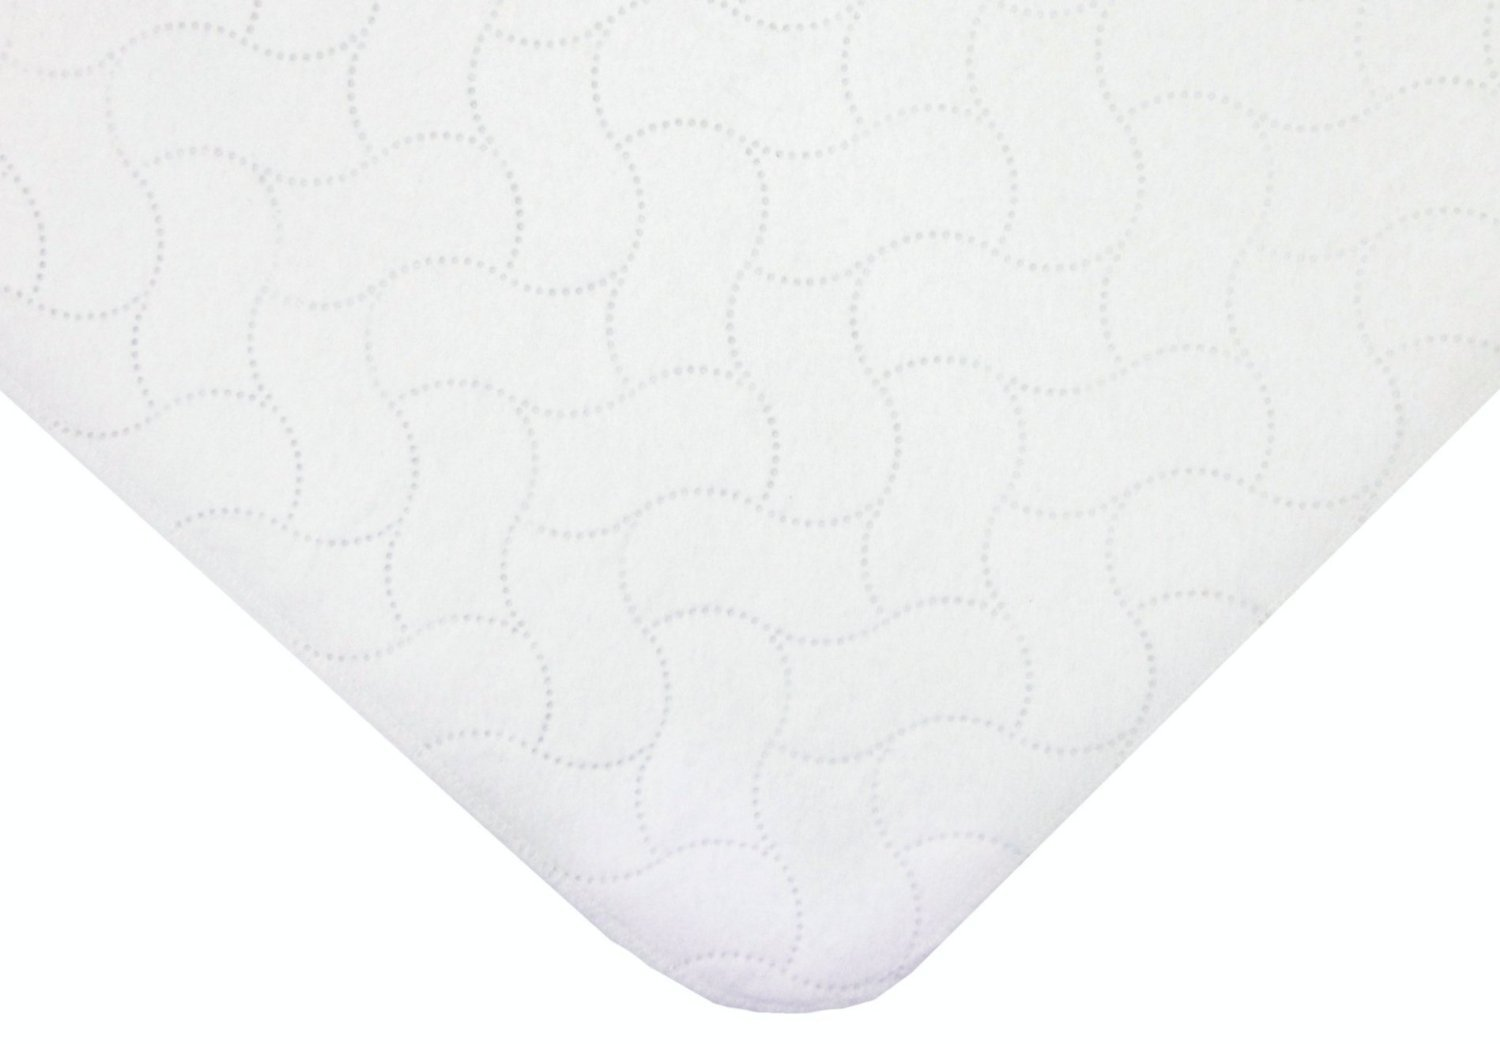 Babyhaven Flat Quilt-Like Waterproof Cradle Pad, White, 2 Pack